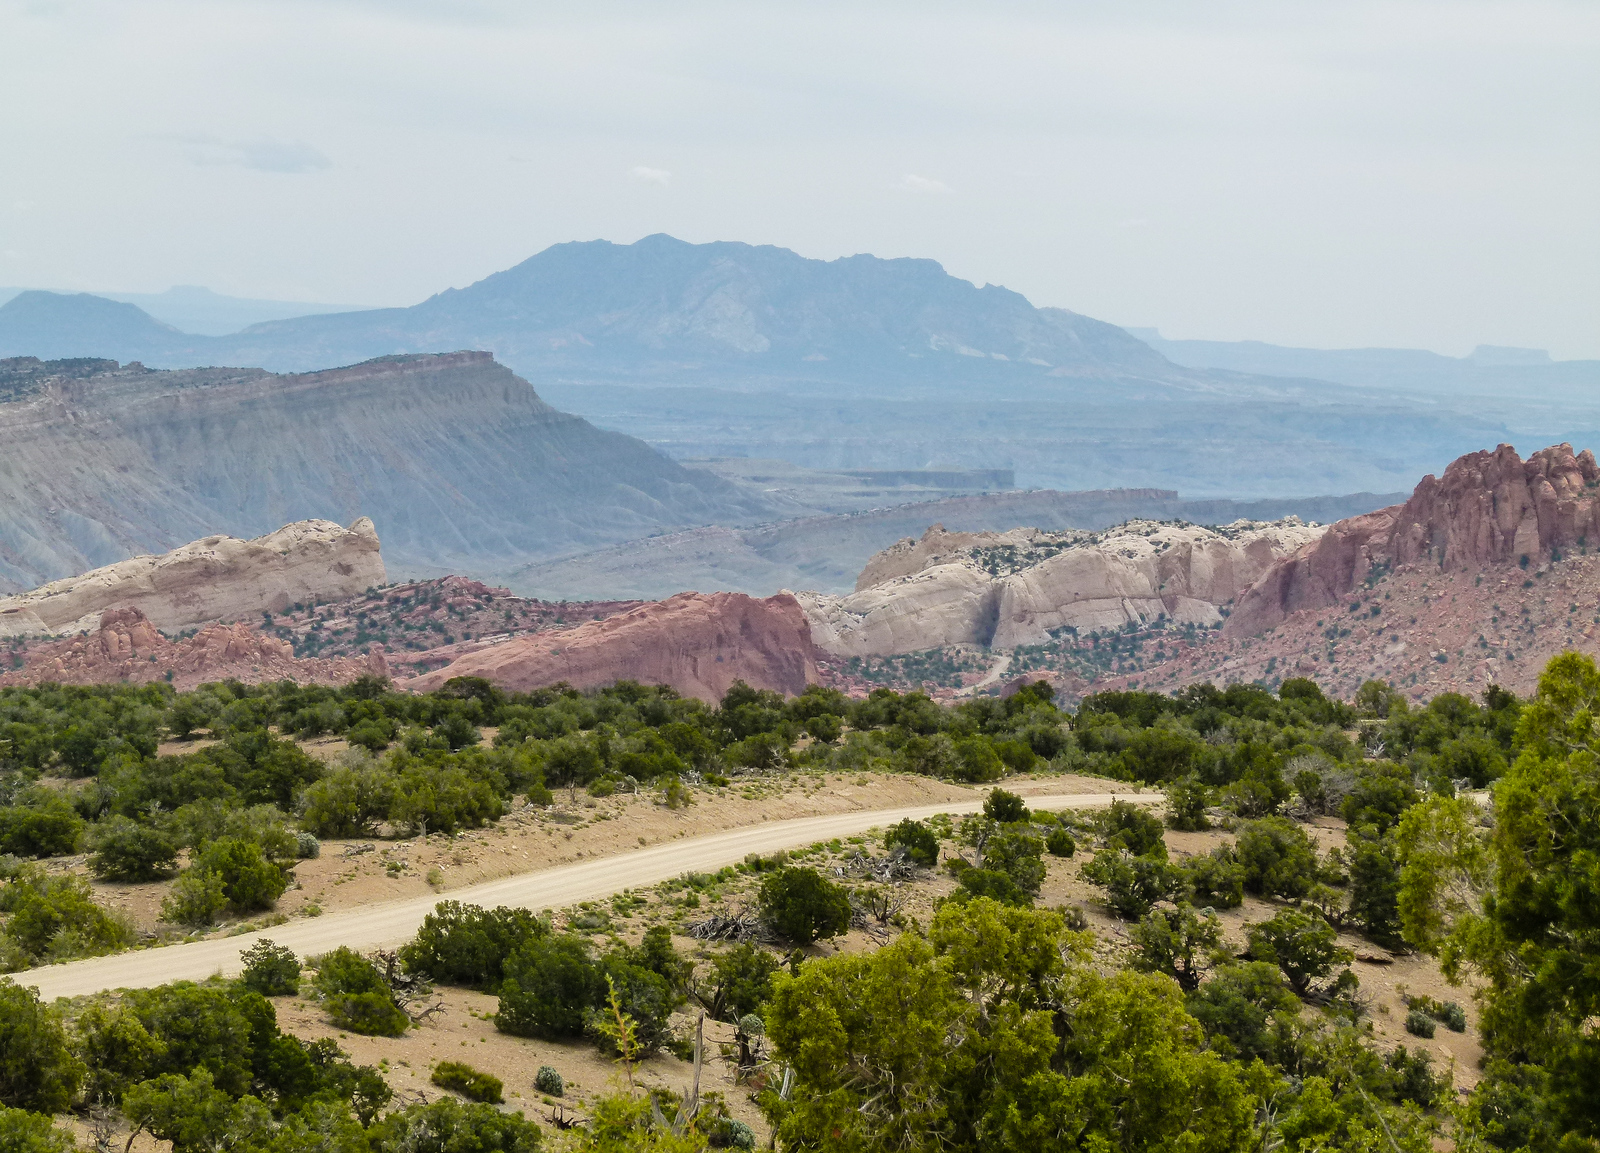 A ribbon of dirt road travels through green sagebrush as it crests a hill on Burr Trail Road. Looking out into Capitol Reef National Park the stone ridges fold onto each other with mountains in the distance..